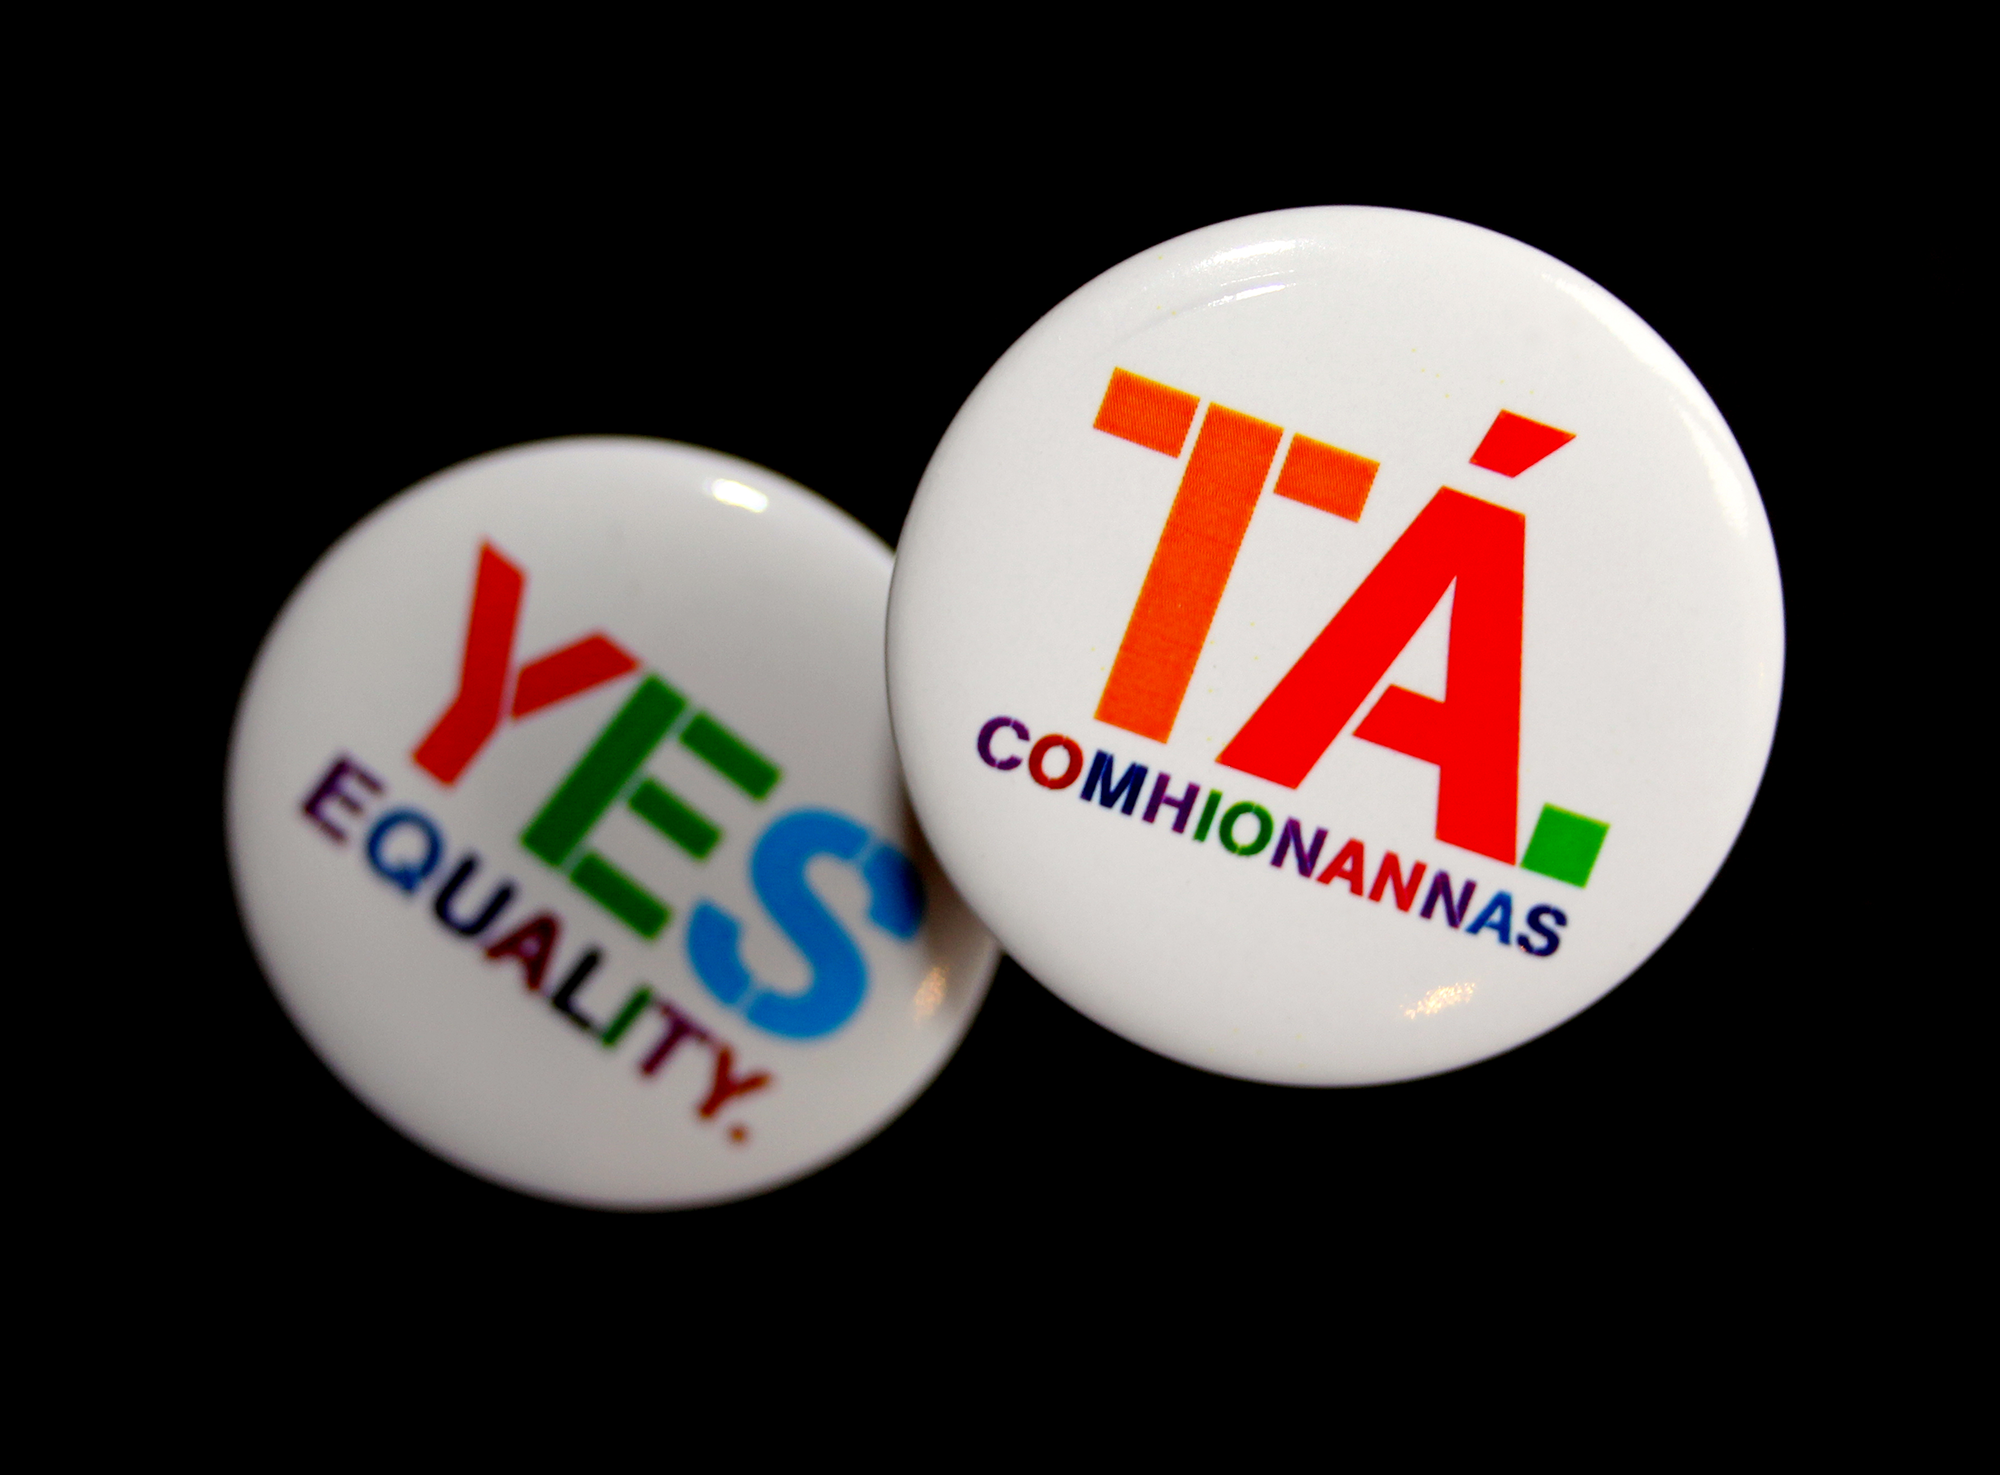 Cover image: Yes Equality